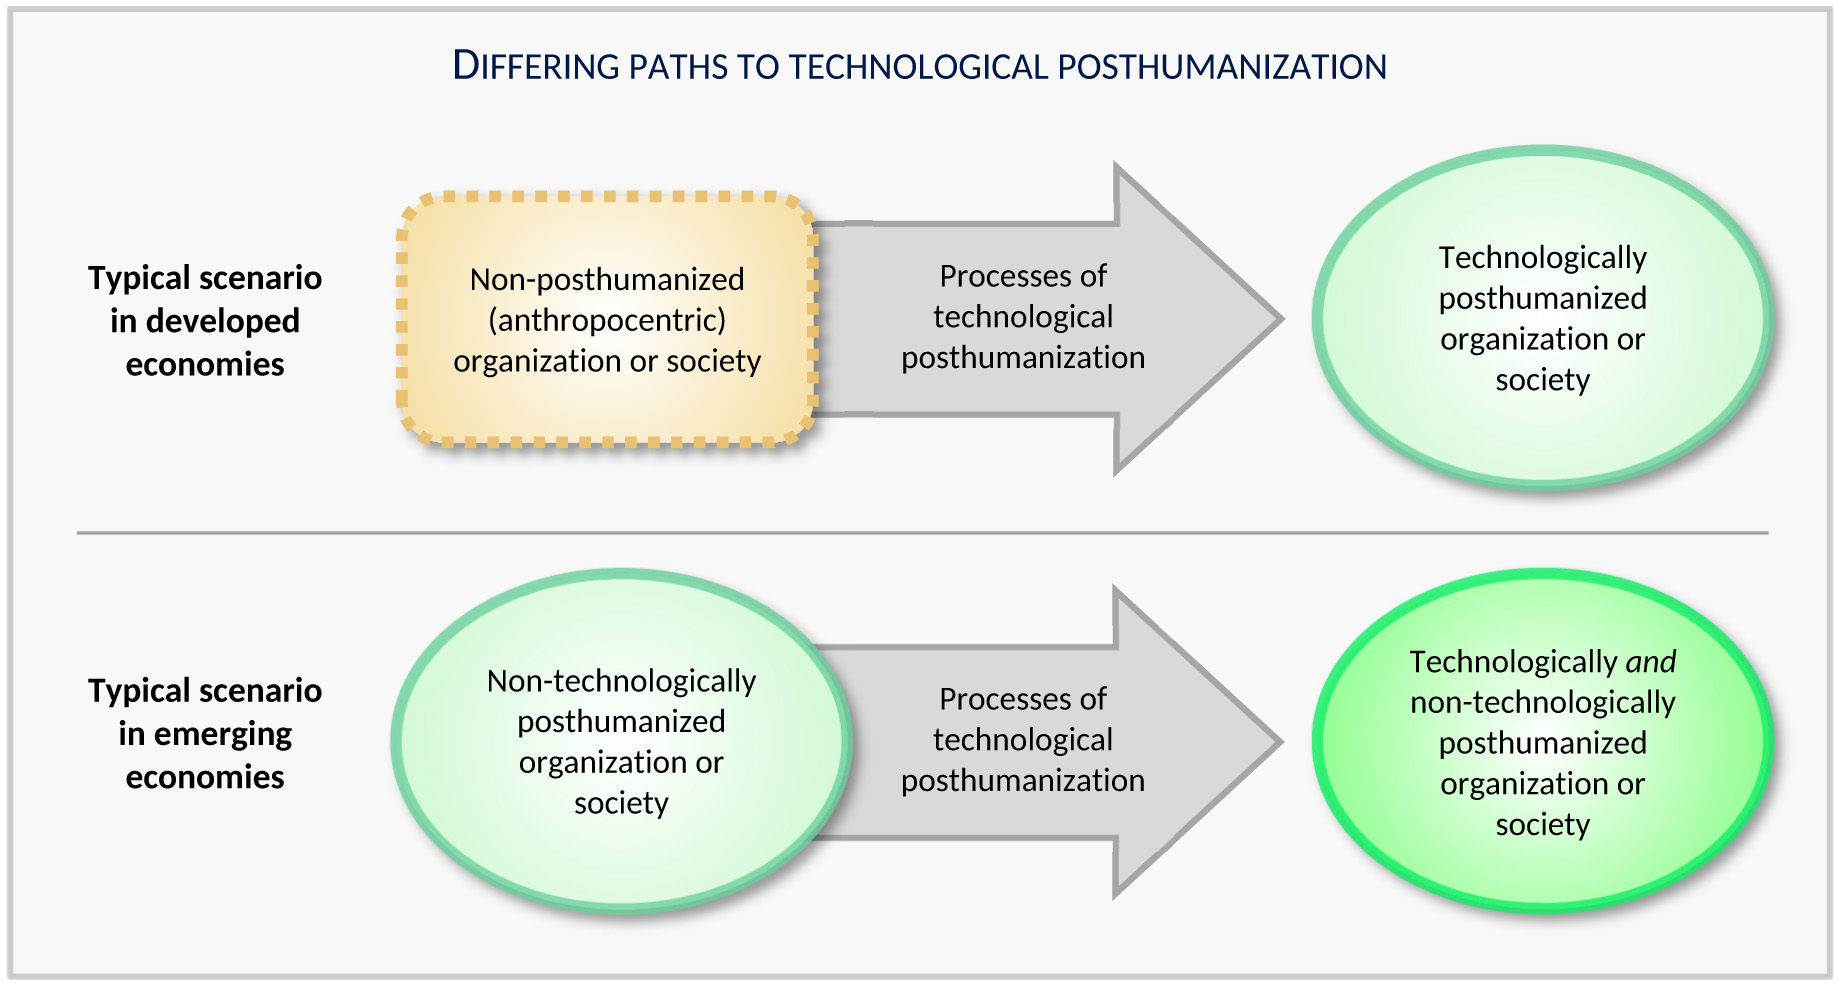 Differing Paths to Technological Posthumanization